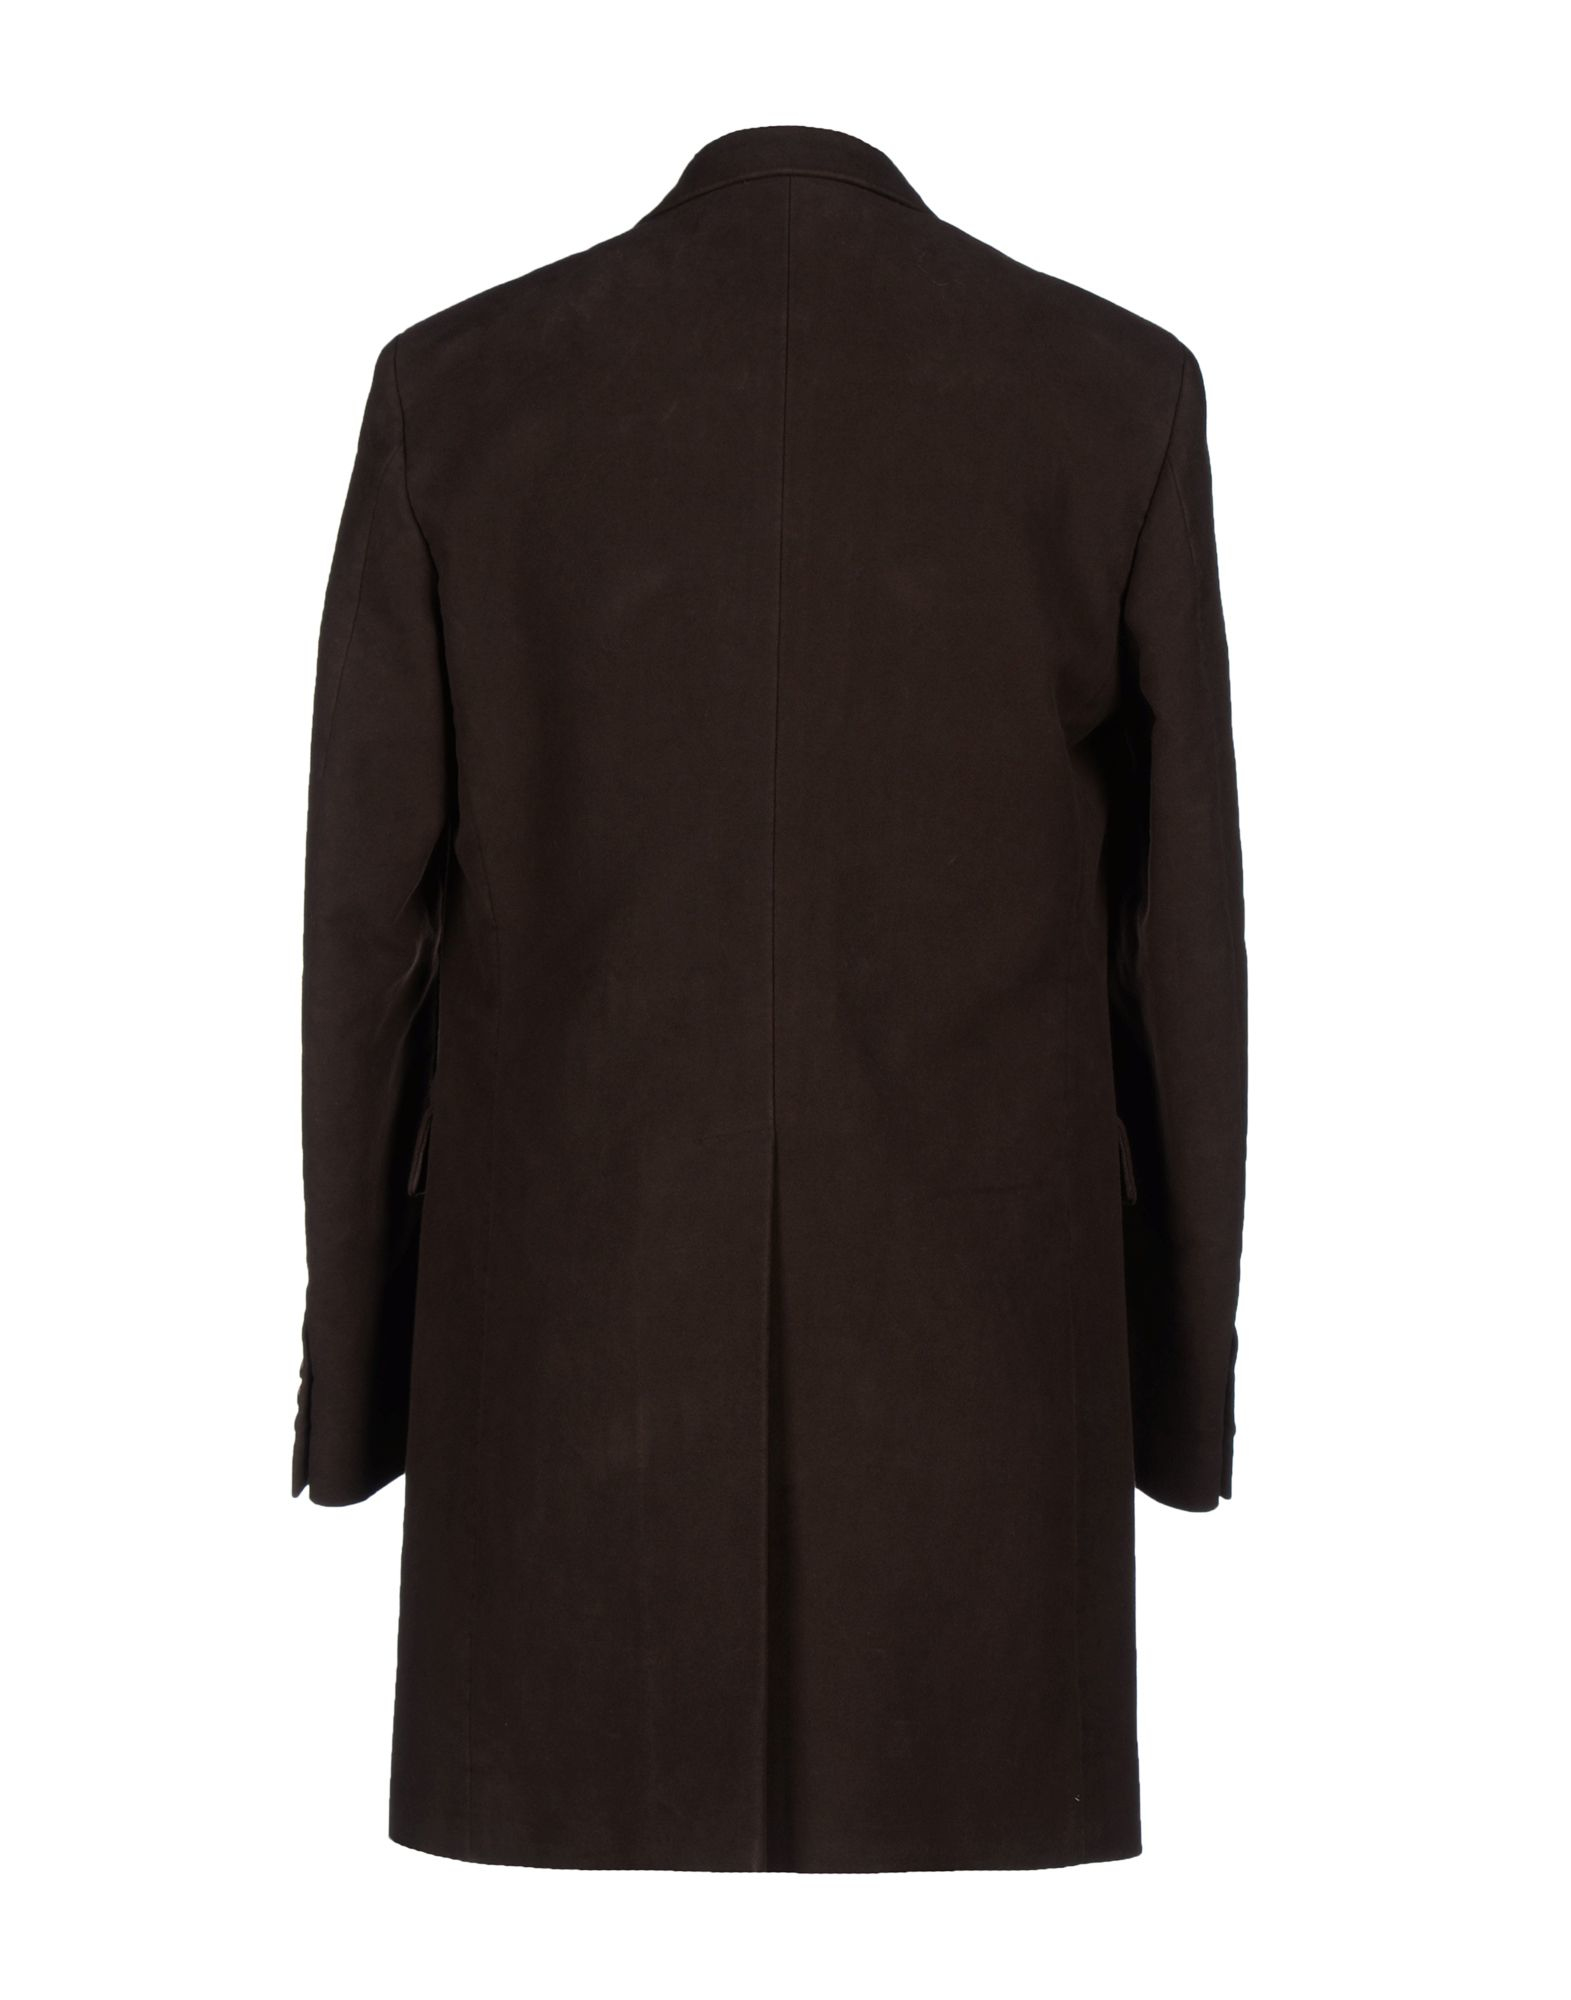 Prada Coat in Brown for Men | Lyst